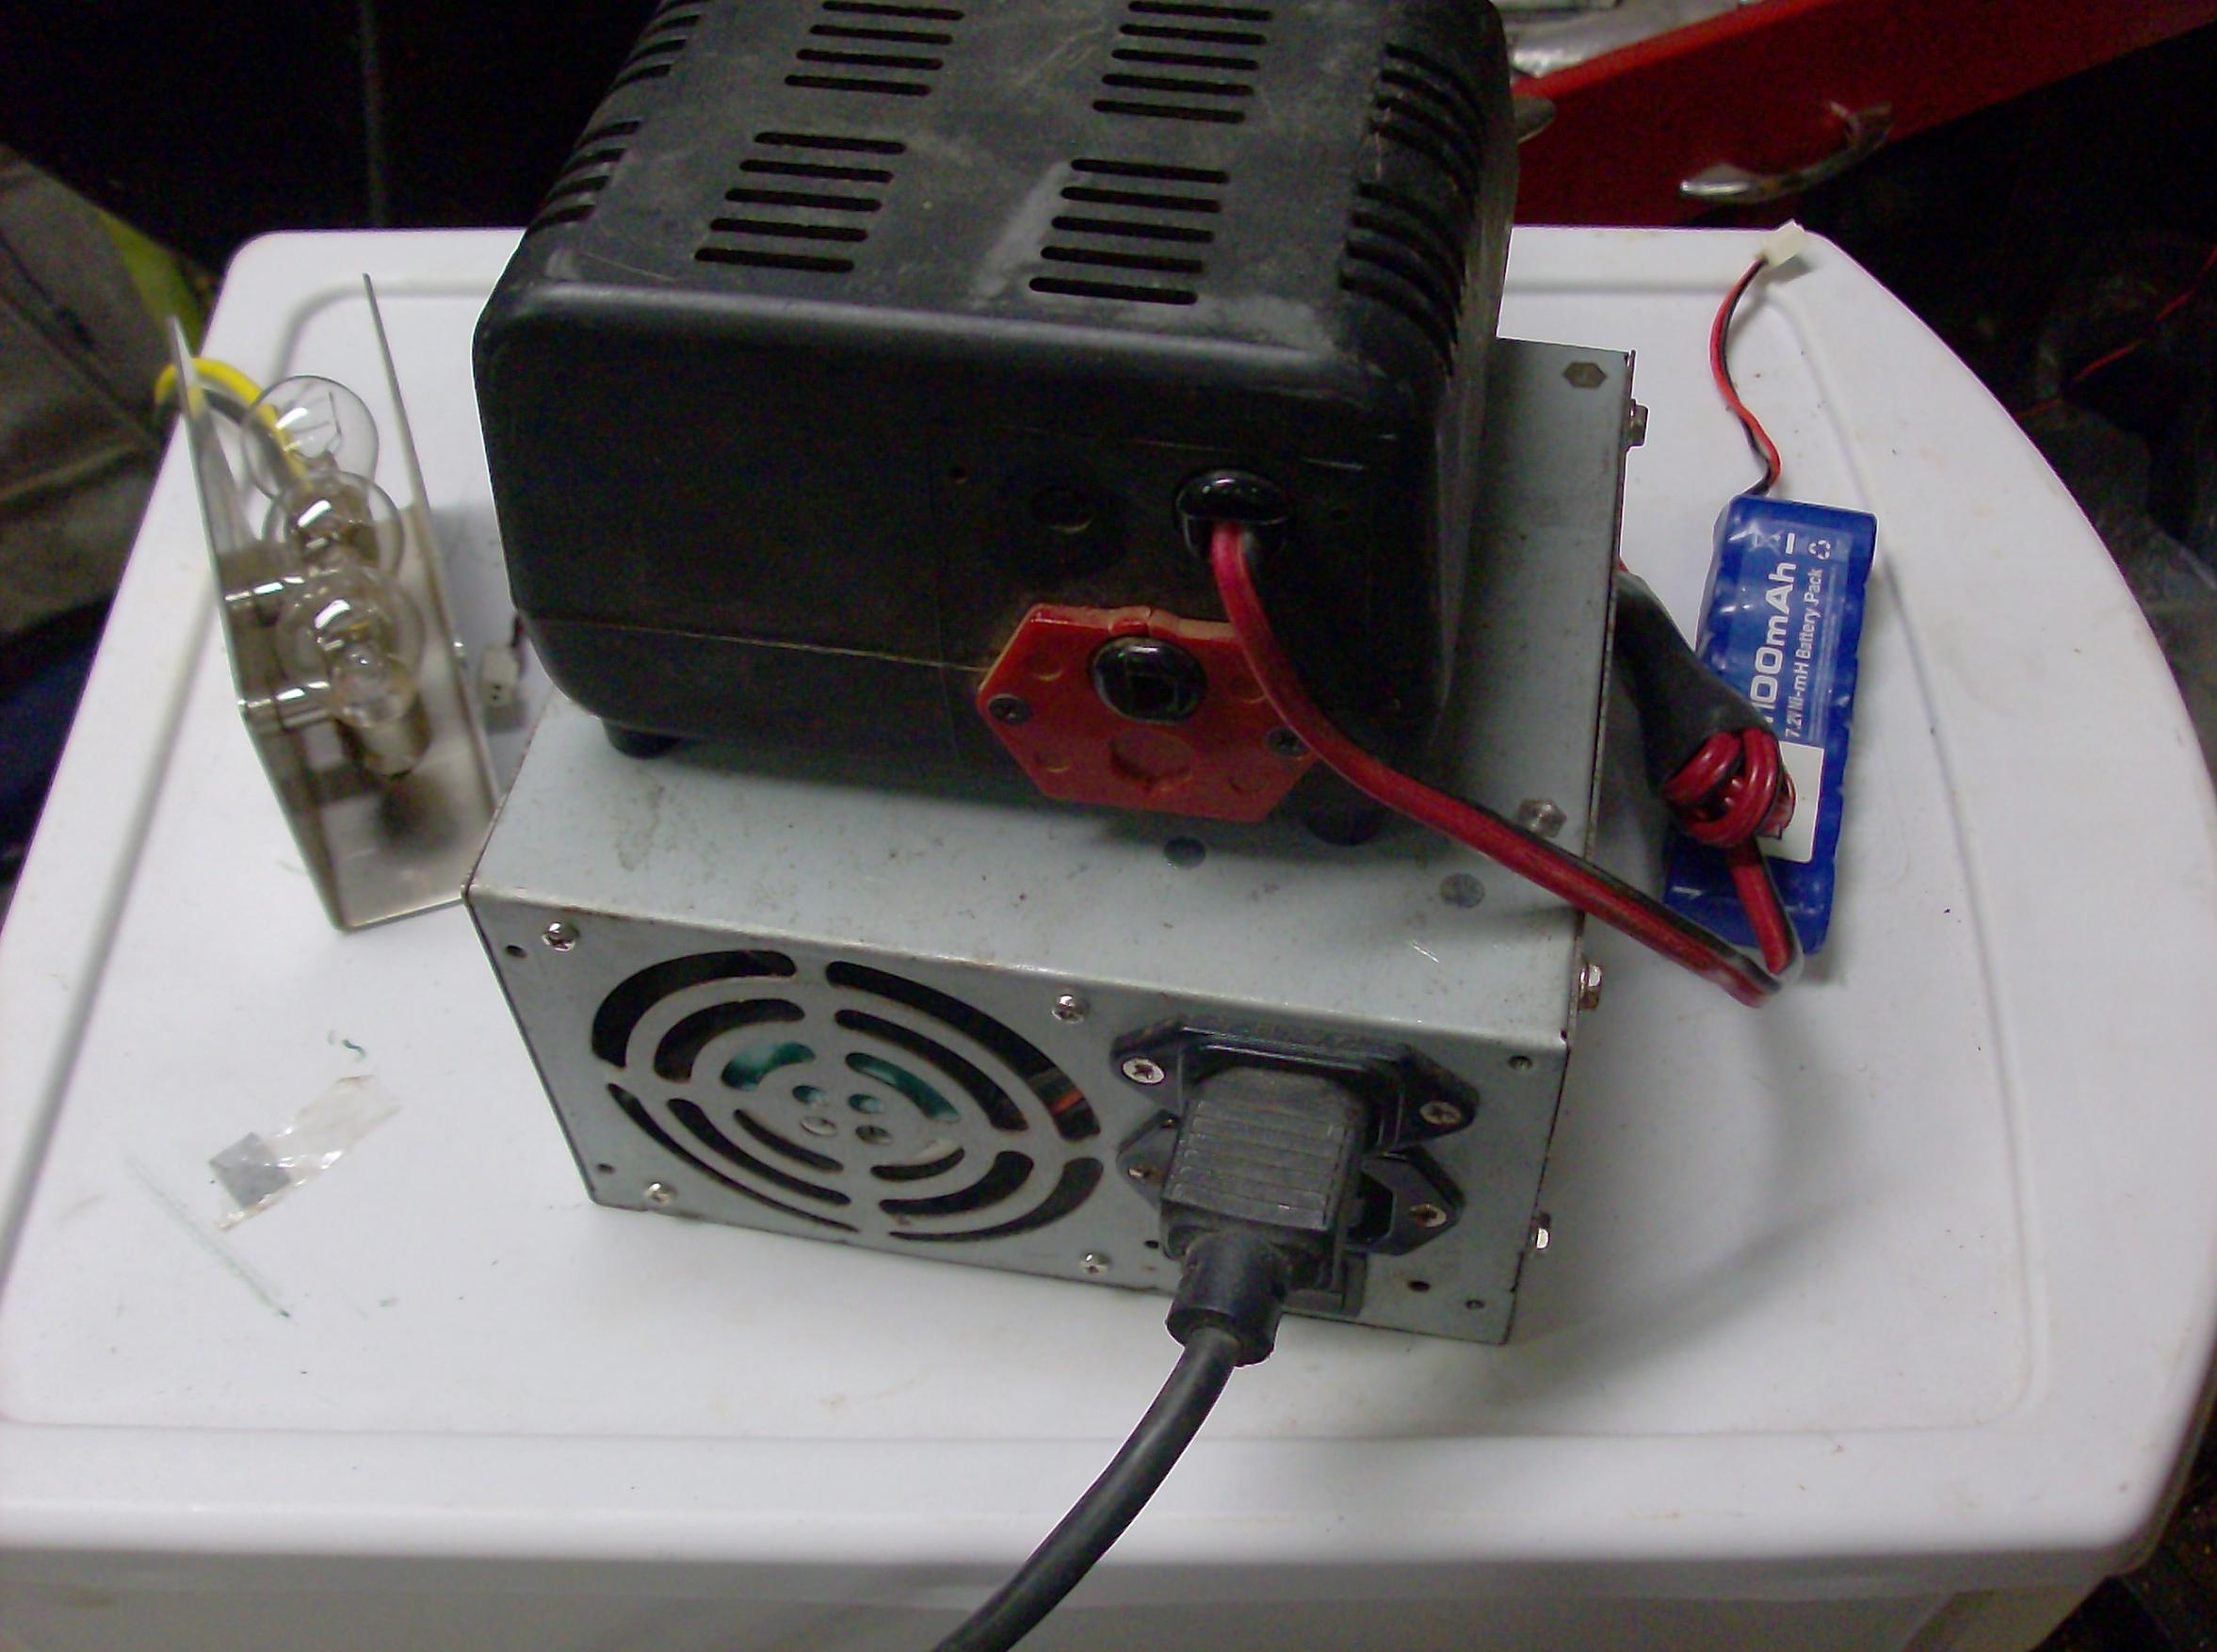 how to change power supply in computer